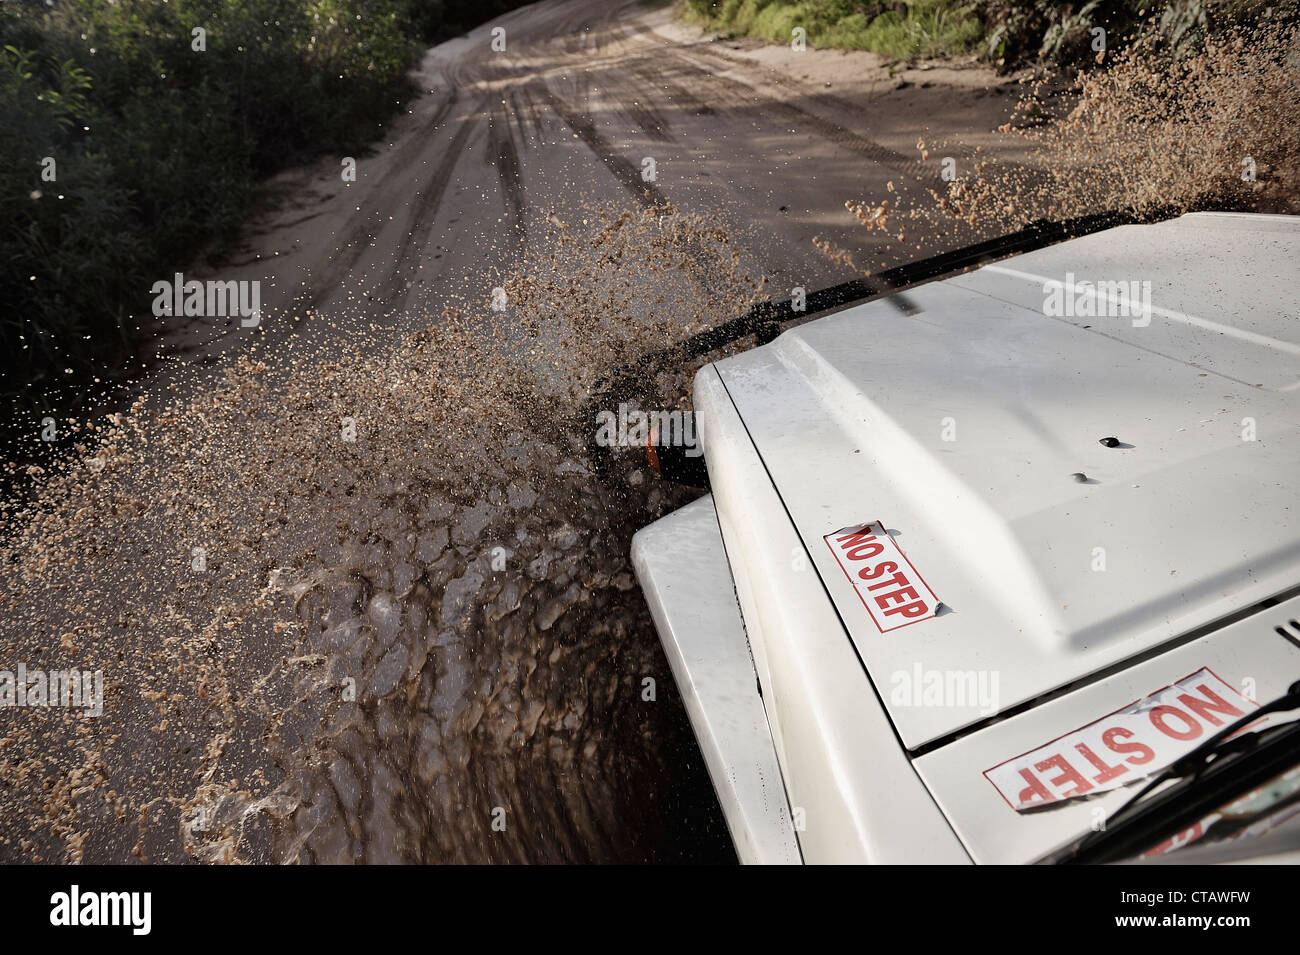 Water creek drivethrough with offroad vehicle 4wd, Fraser Island, UNESCO World Nature Site, Queensland, Australia - Stock Image